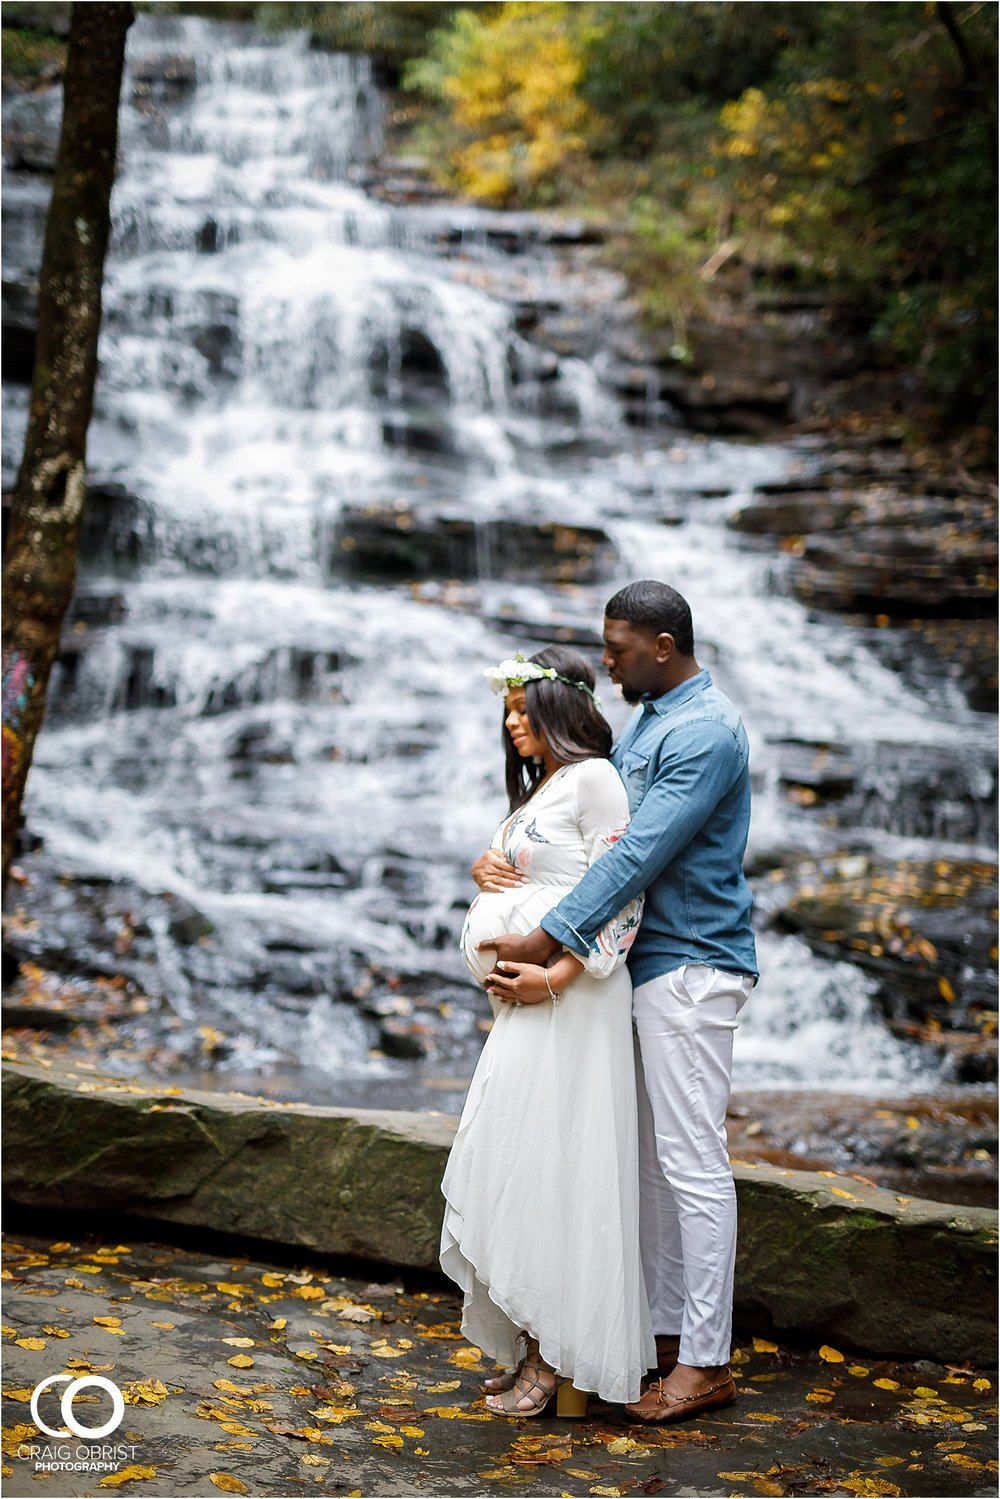 Waterfall Maternity Wedding Portraits North Georgia Atlanta_0002.jpg